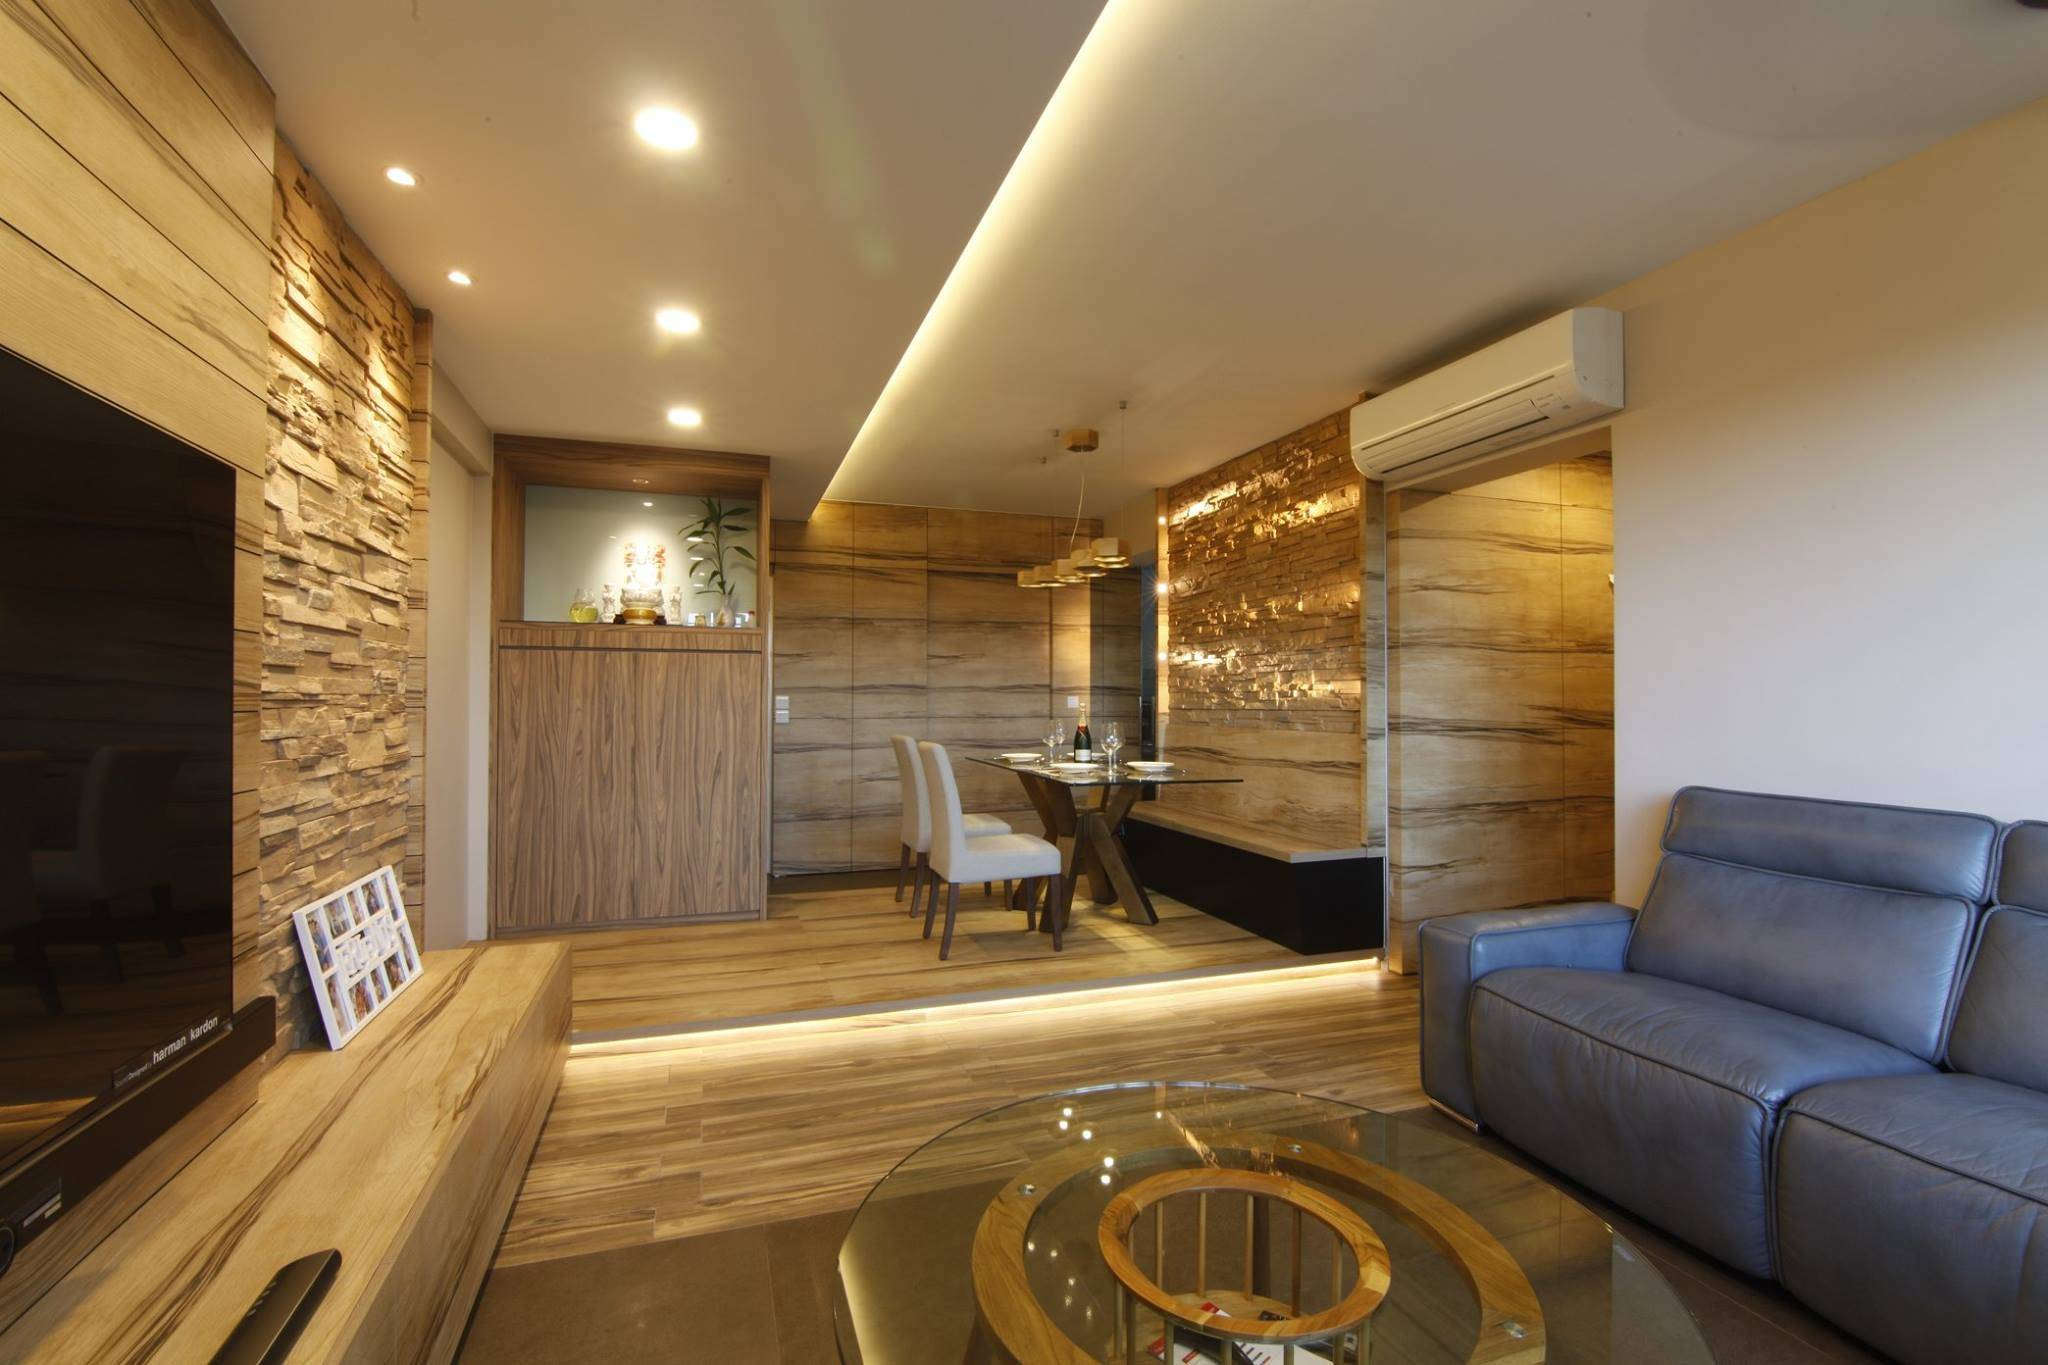 Tranquilizing Modern Resort Interior Design Wood Grain Laminate